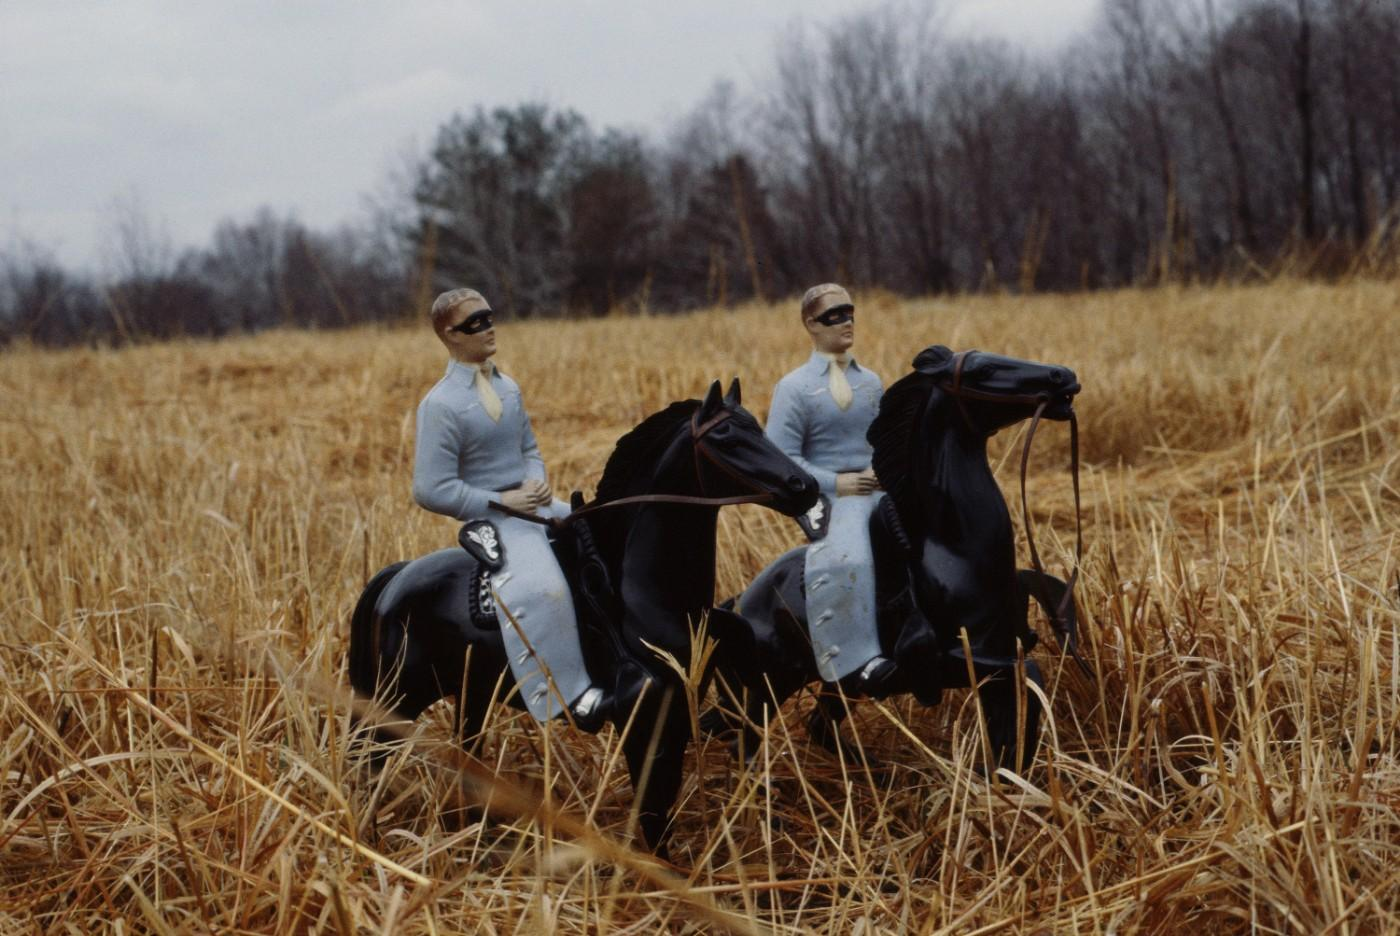 Laurie Simmons, Brothers/Horizon, 1979